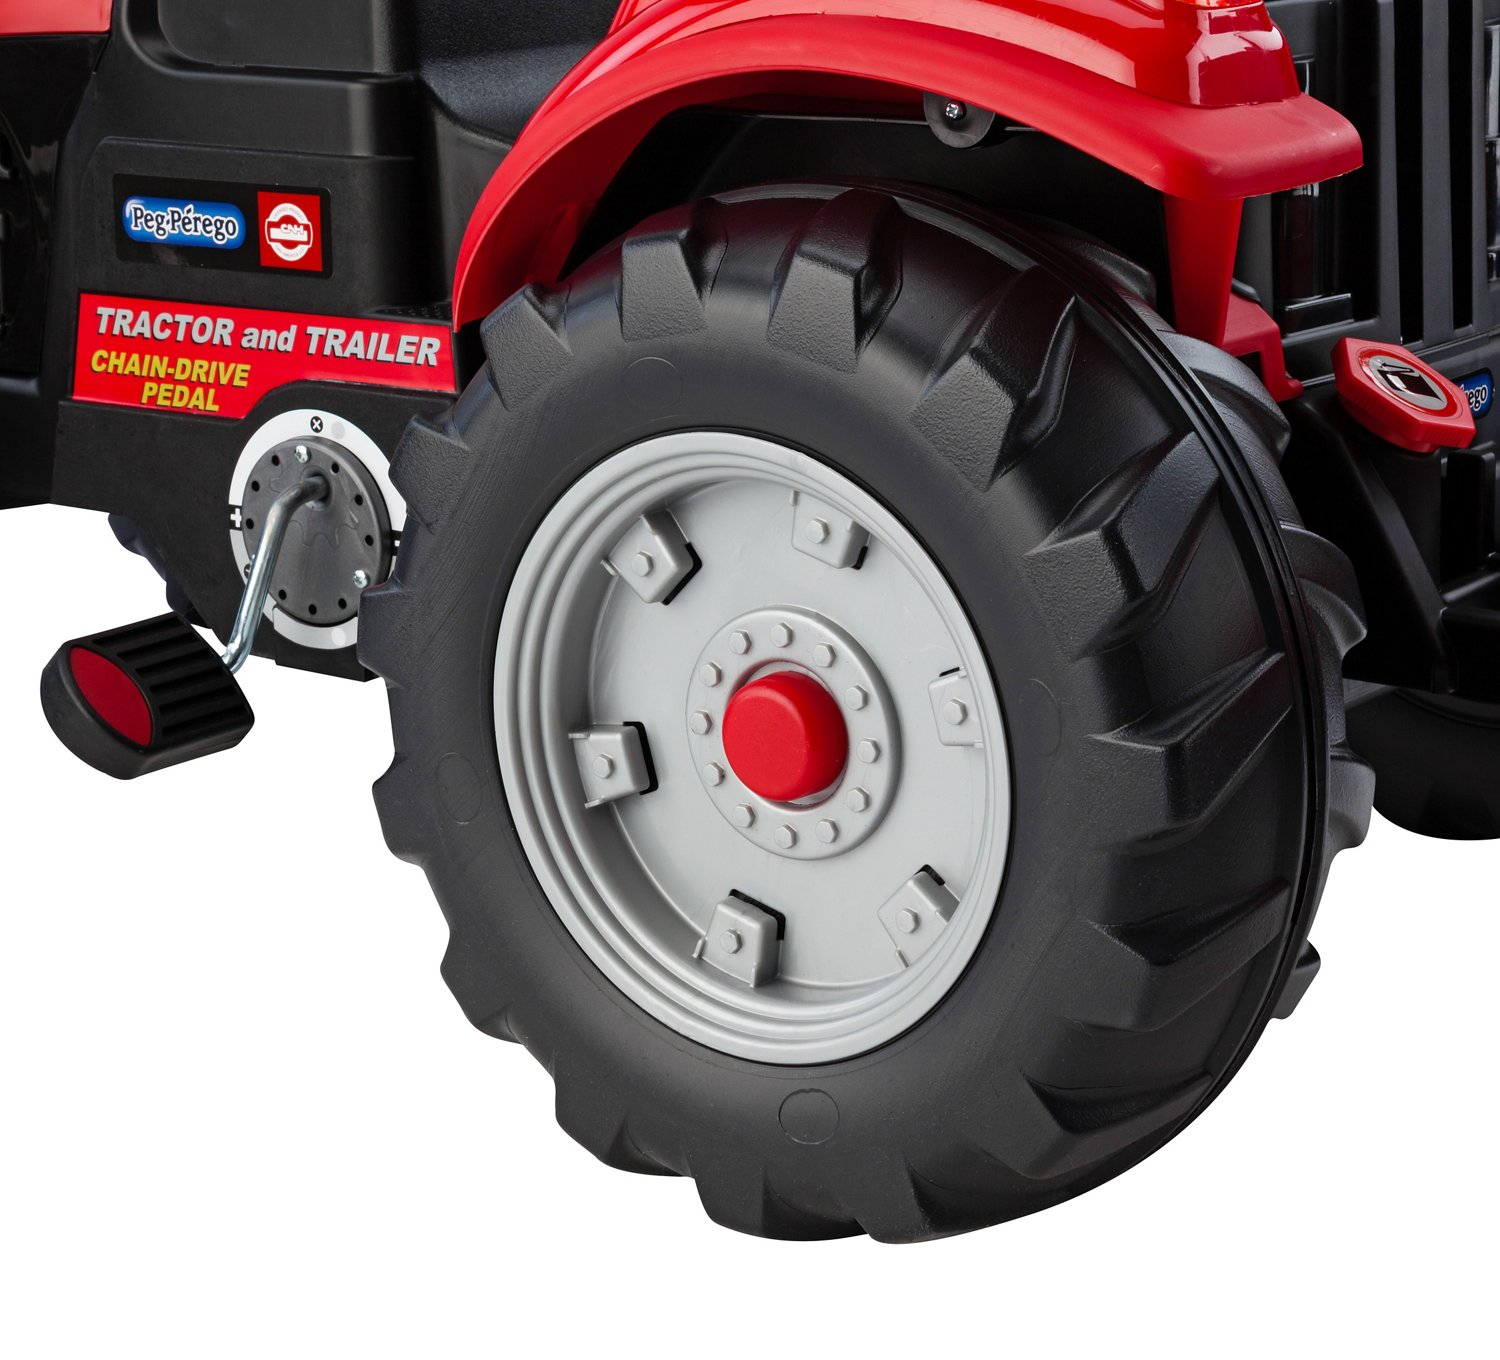 Peg Perego Case IH Tractor and Trailer Ride-On Pedal Vehicle - view number 4